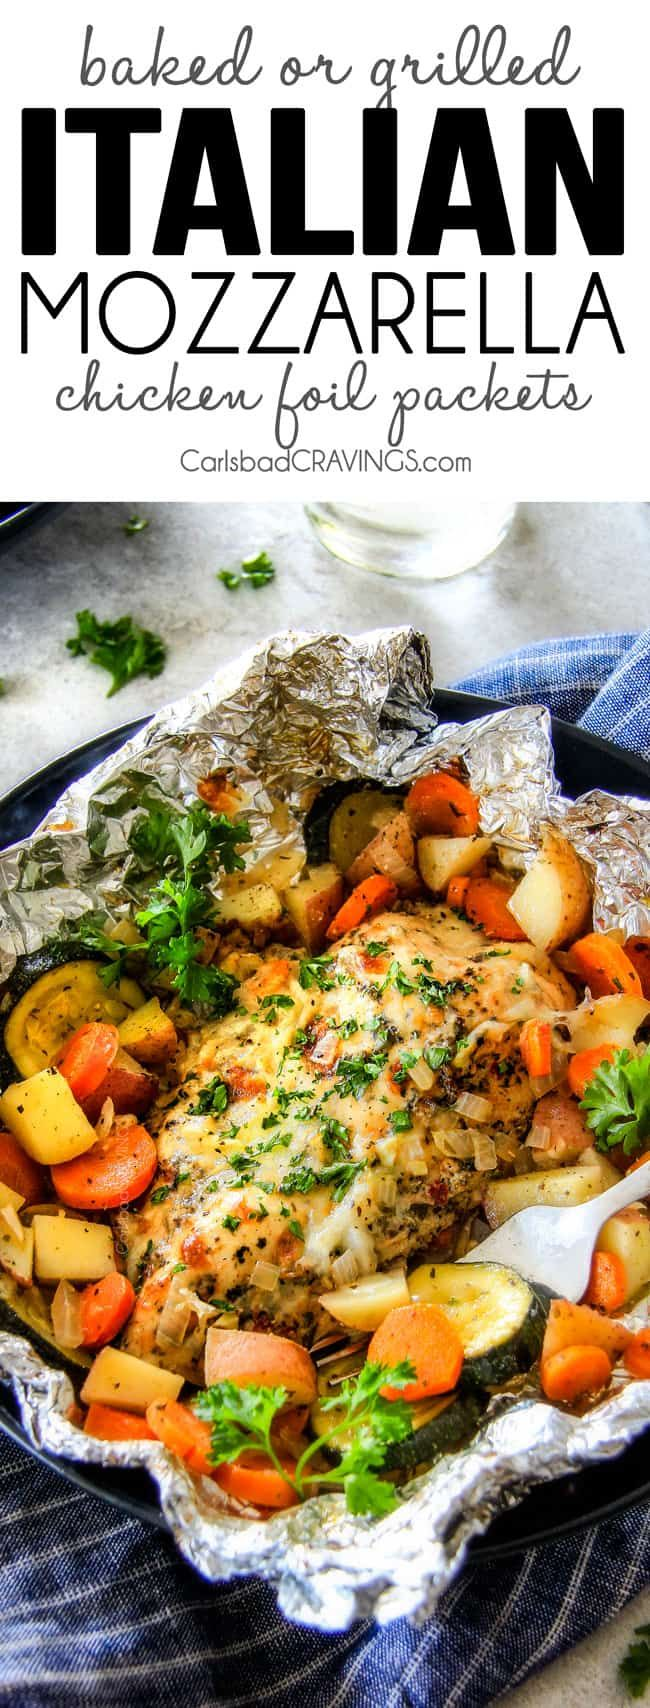 Baked or GrilledItalian Mozzarella Chicken Foil Packets are bursting with astonishingly juicy, flavorful chicken and tender, seasoned Potatoes, Carrots and Zucchini all smothered with Mozzarella Cheese! These foil packets are meal-in-one that are quick to throw together and even quicker to clean up!